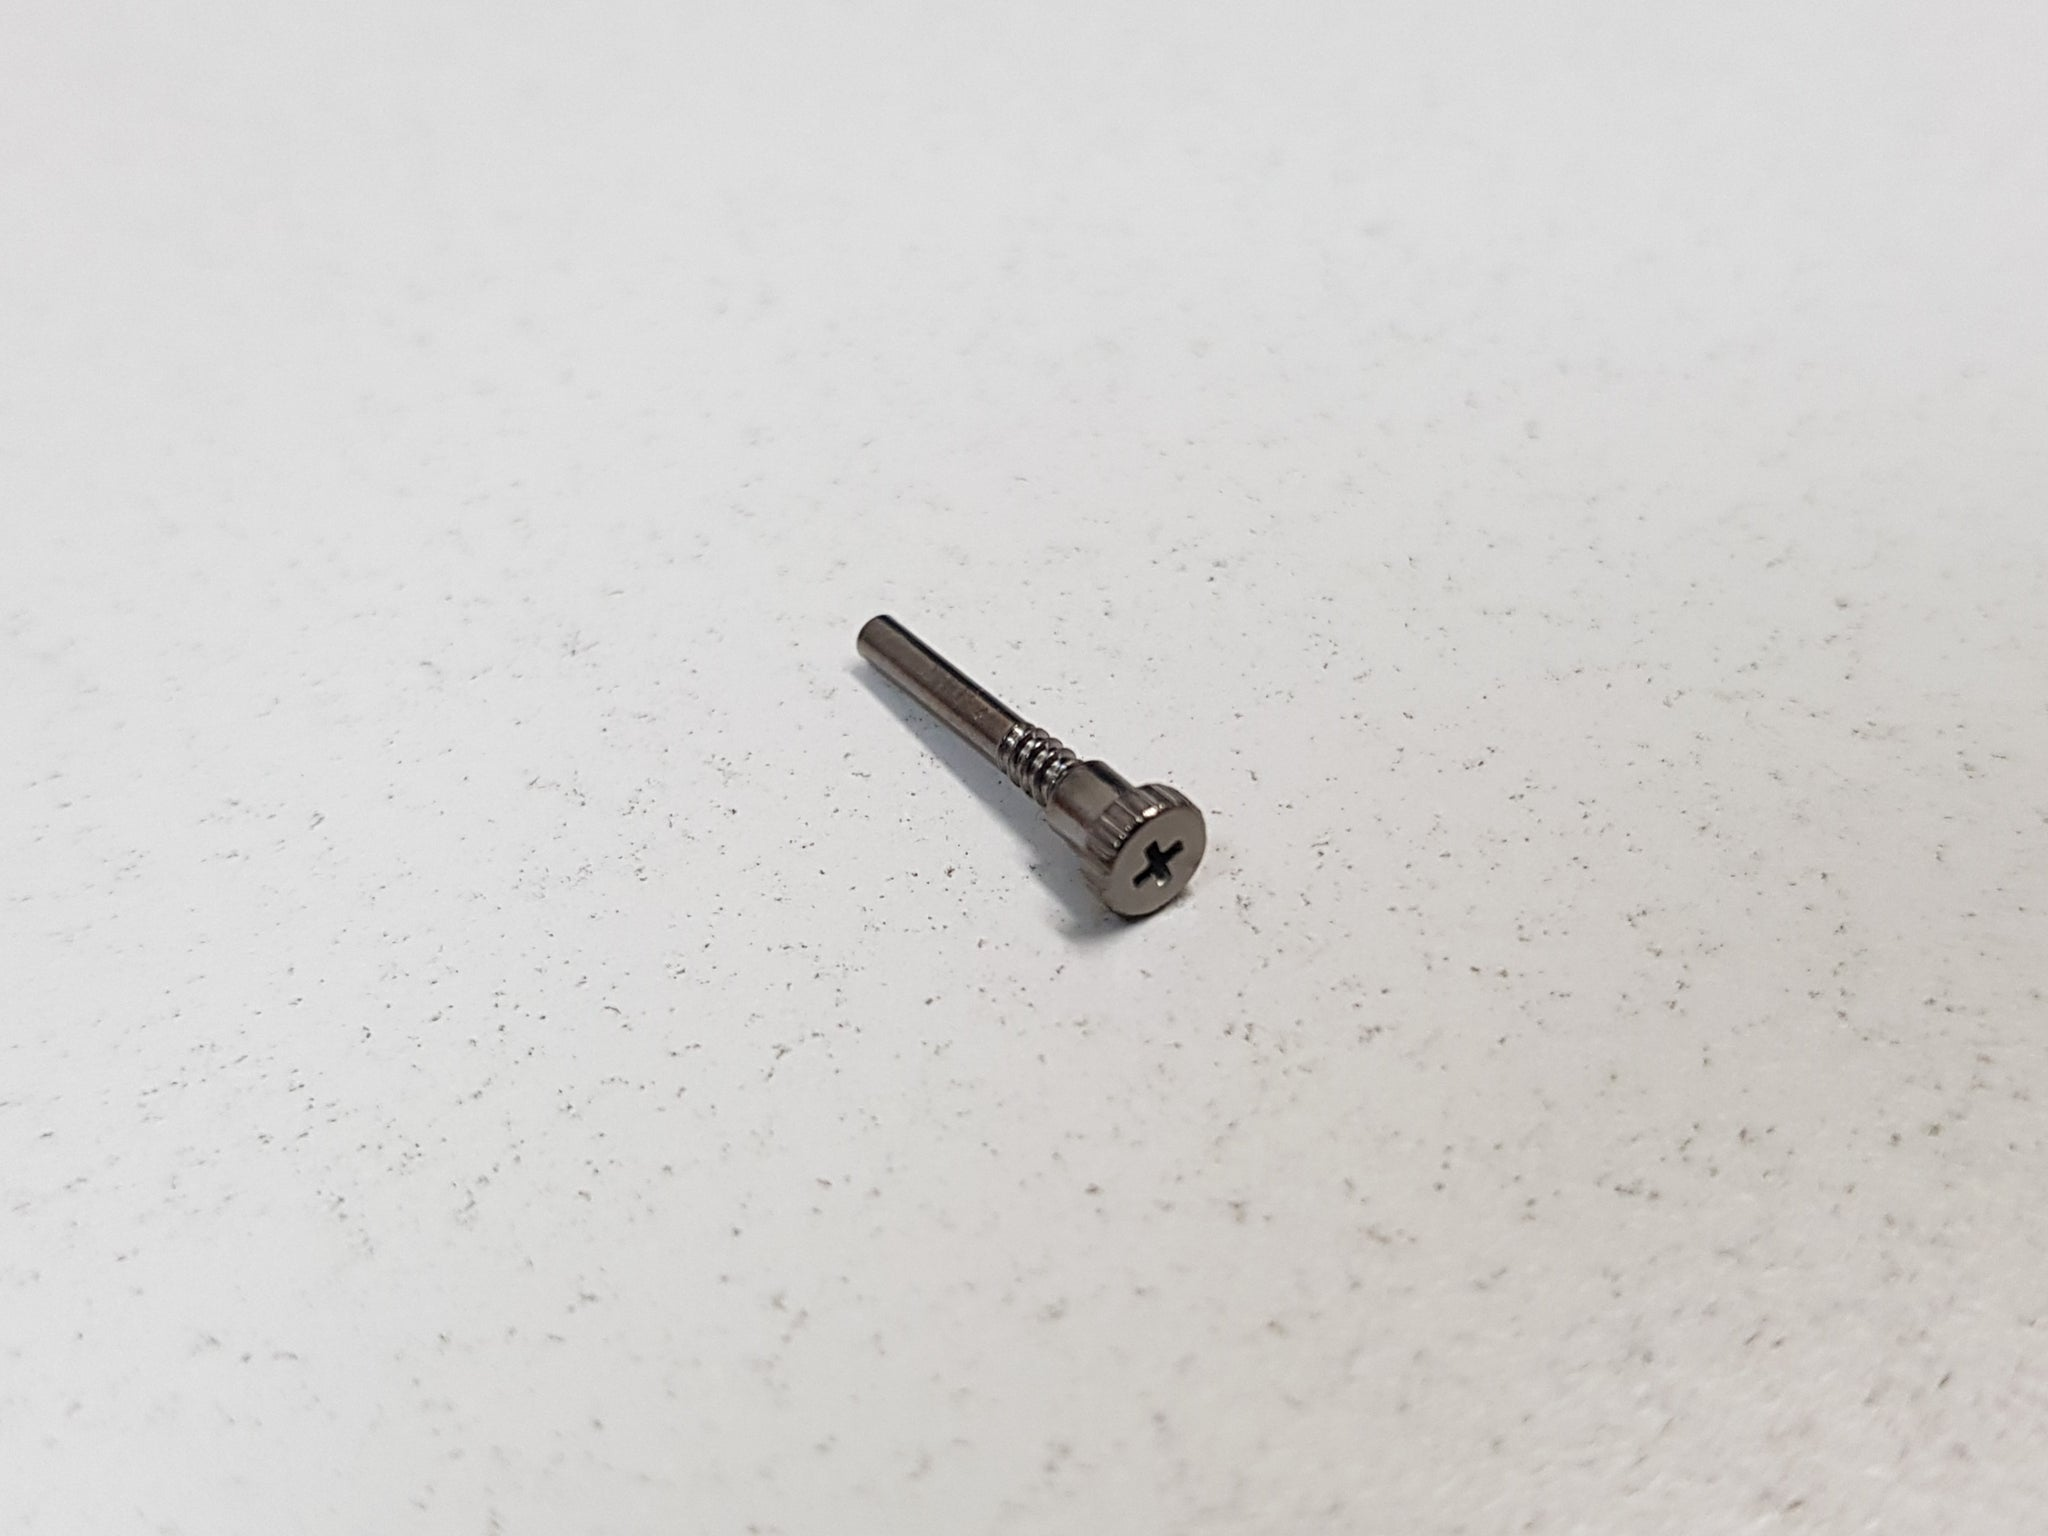 CASIO BAND SCREW (10388894) - G-SHOCK